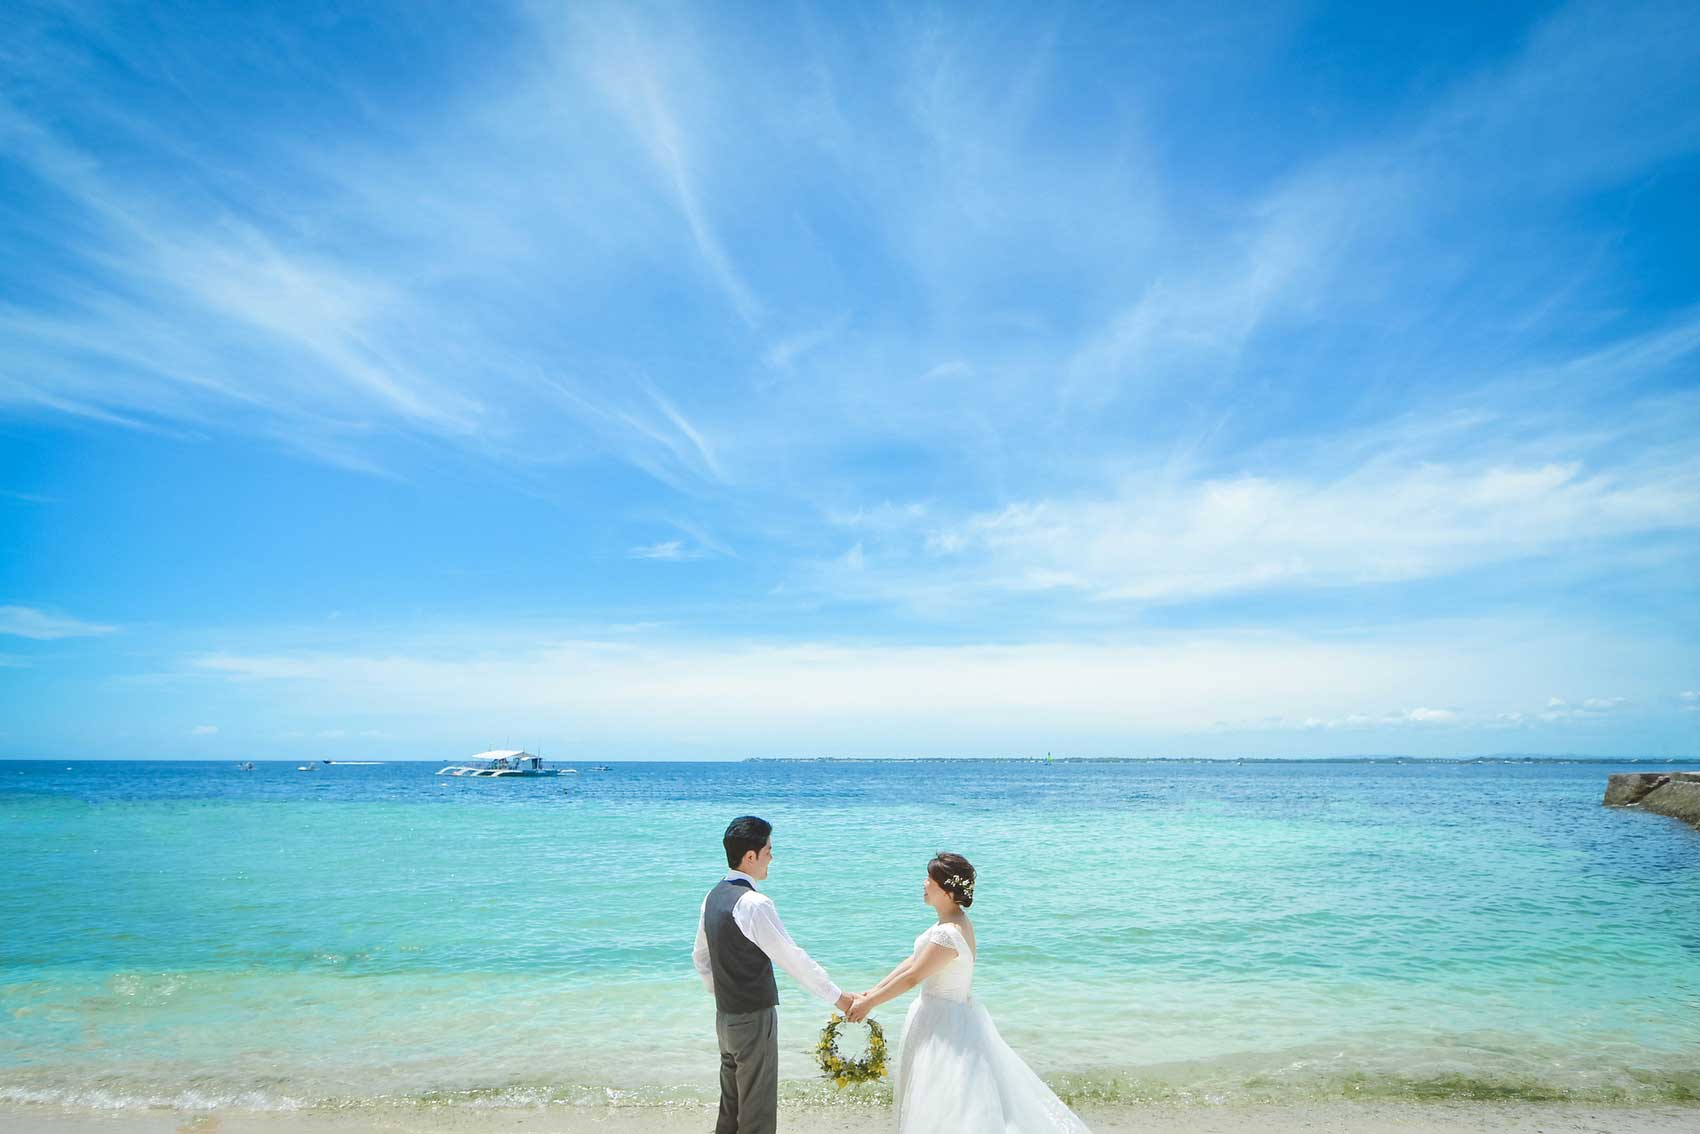 A様&S様は平成の最後に結婚写真を!